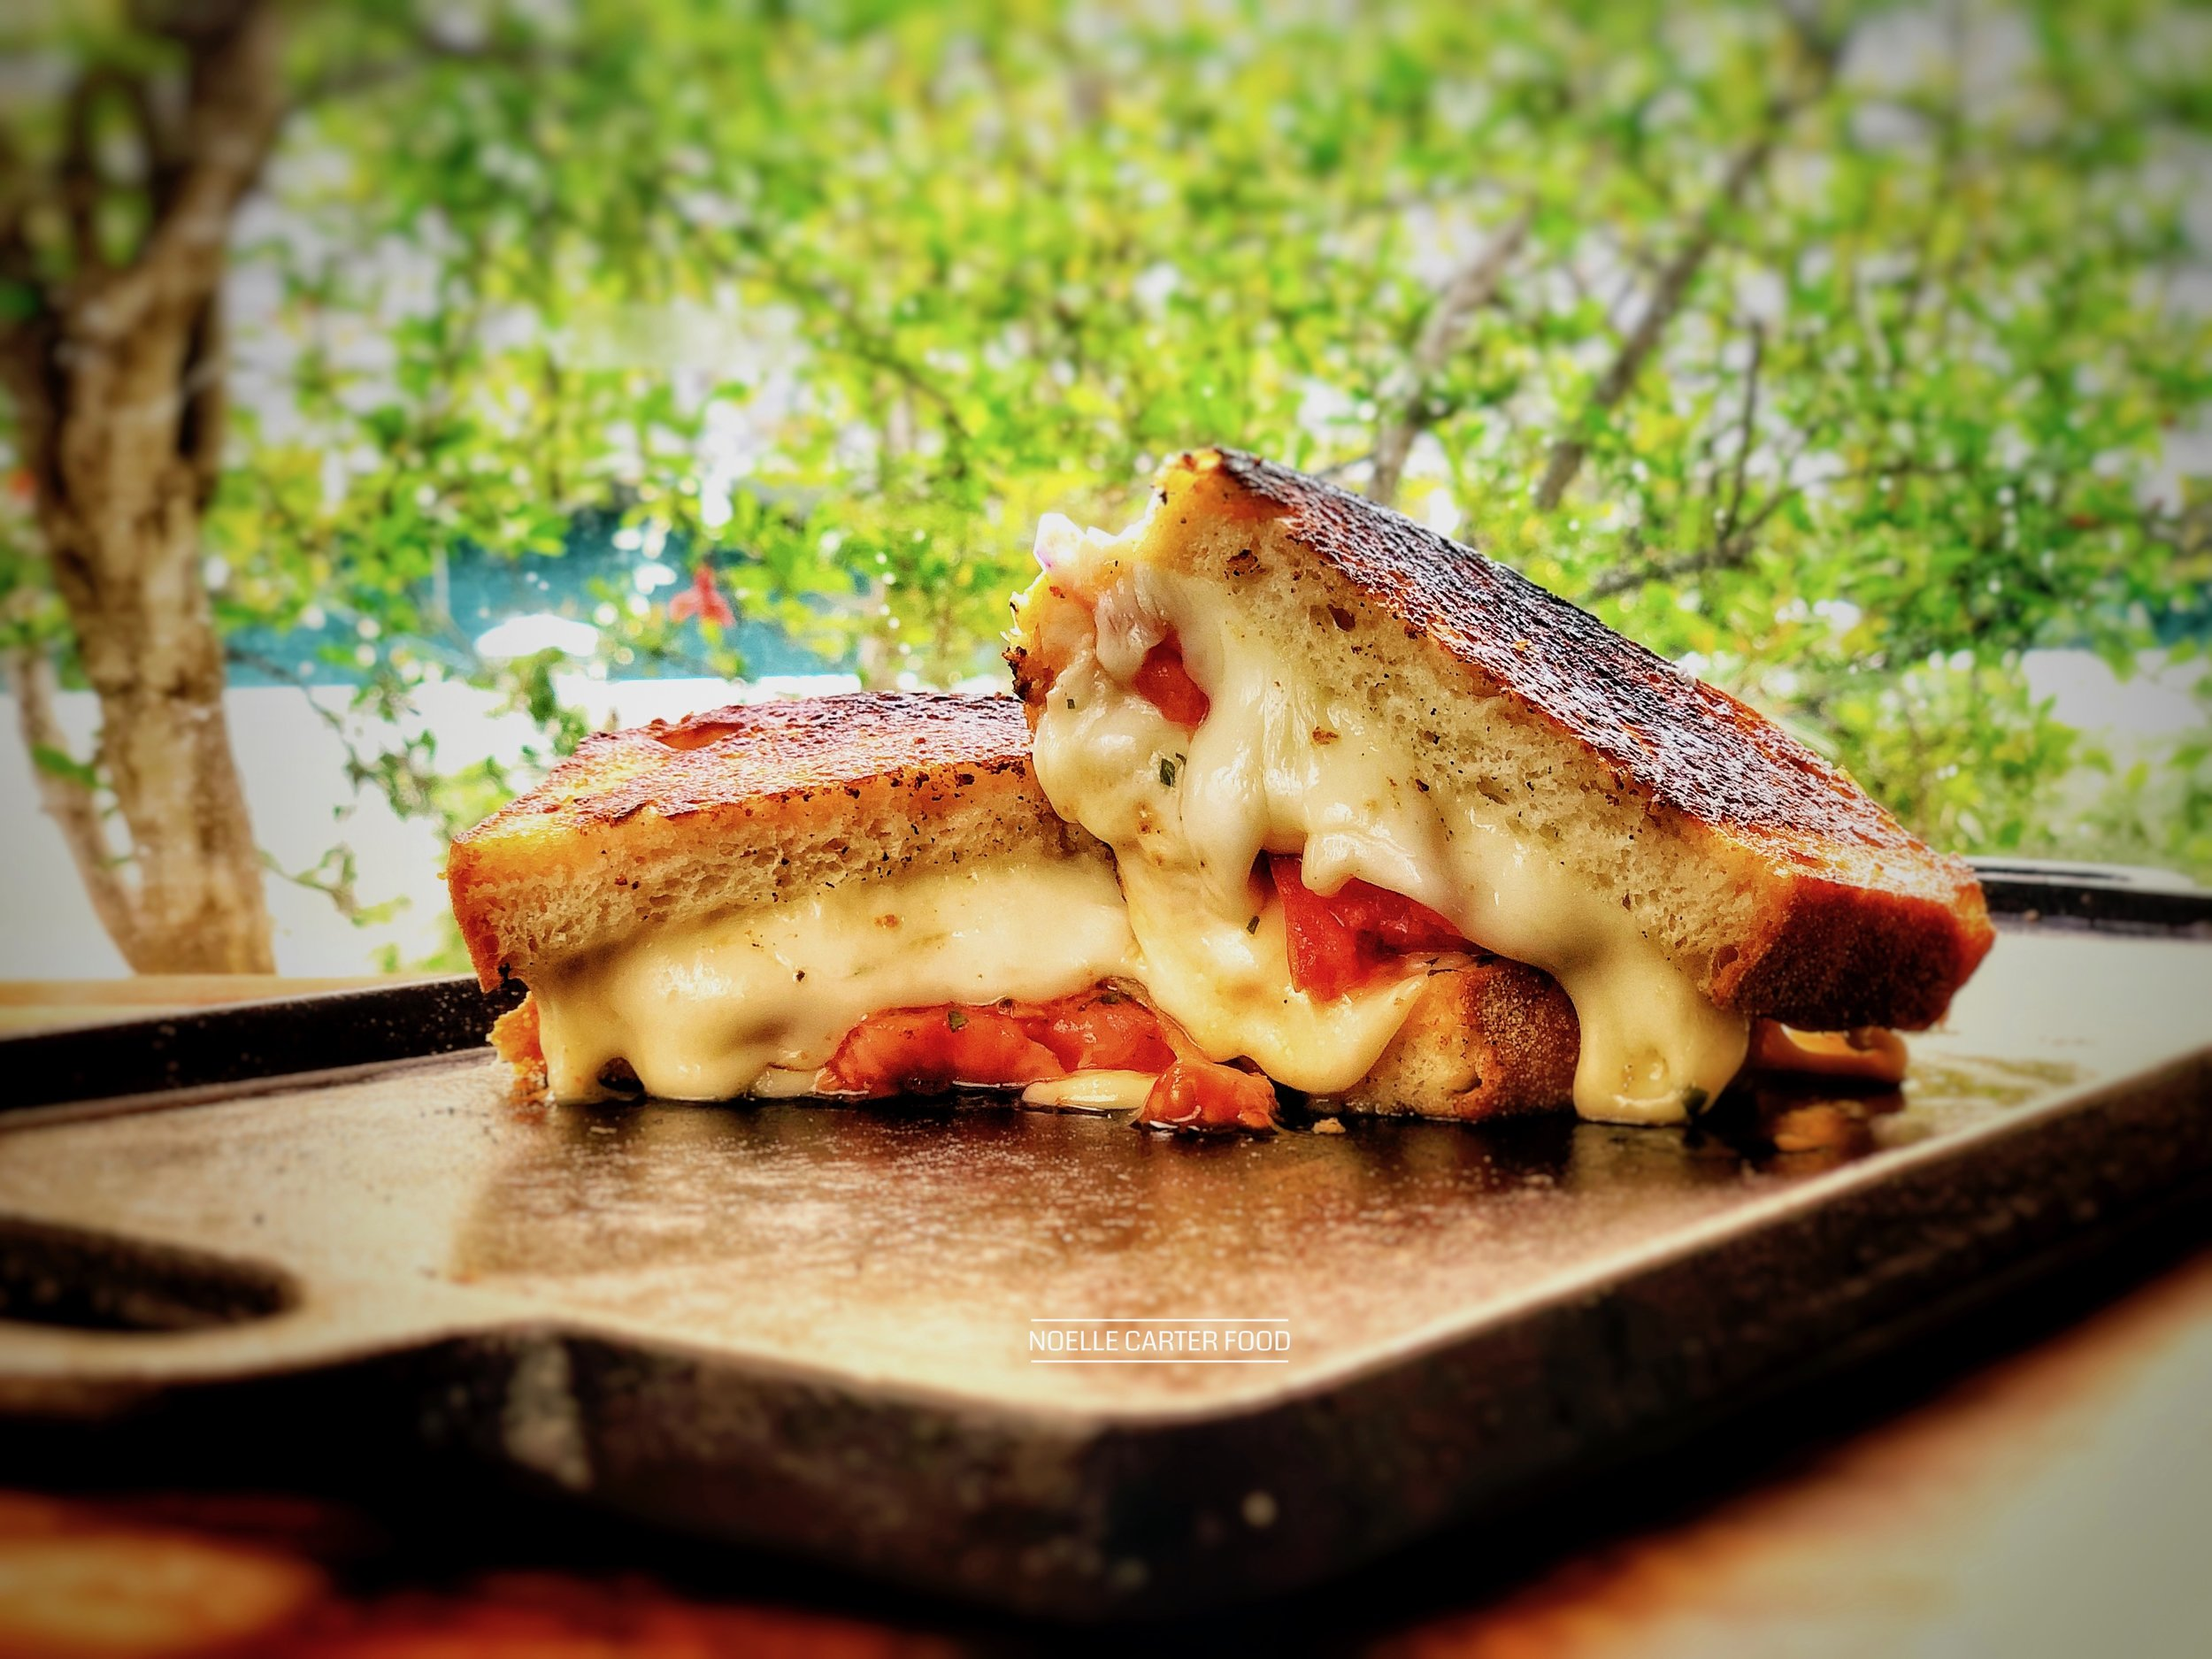 Grilled cheese with marinated tomatoes. (Noelle Carter)